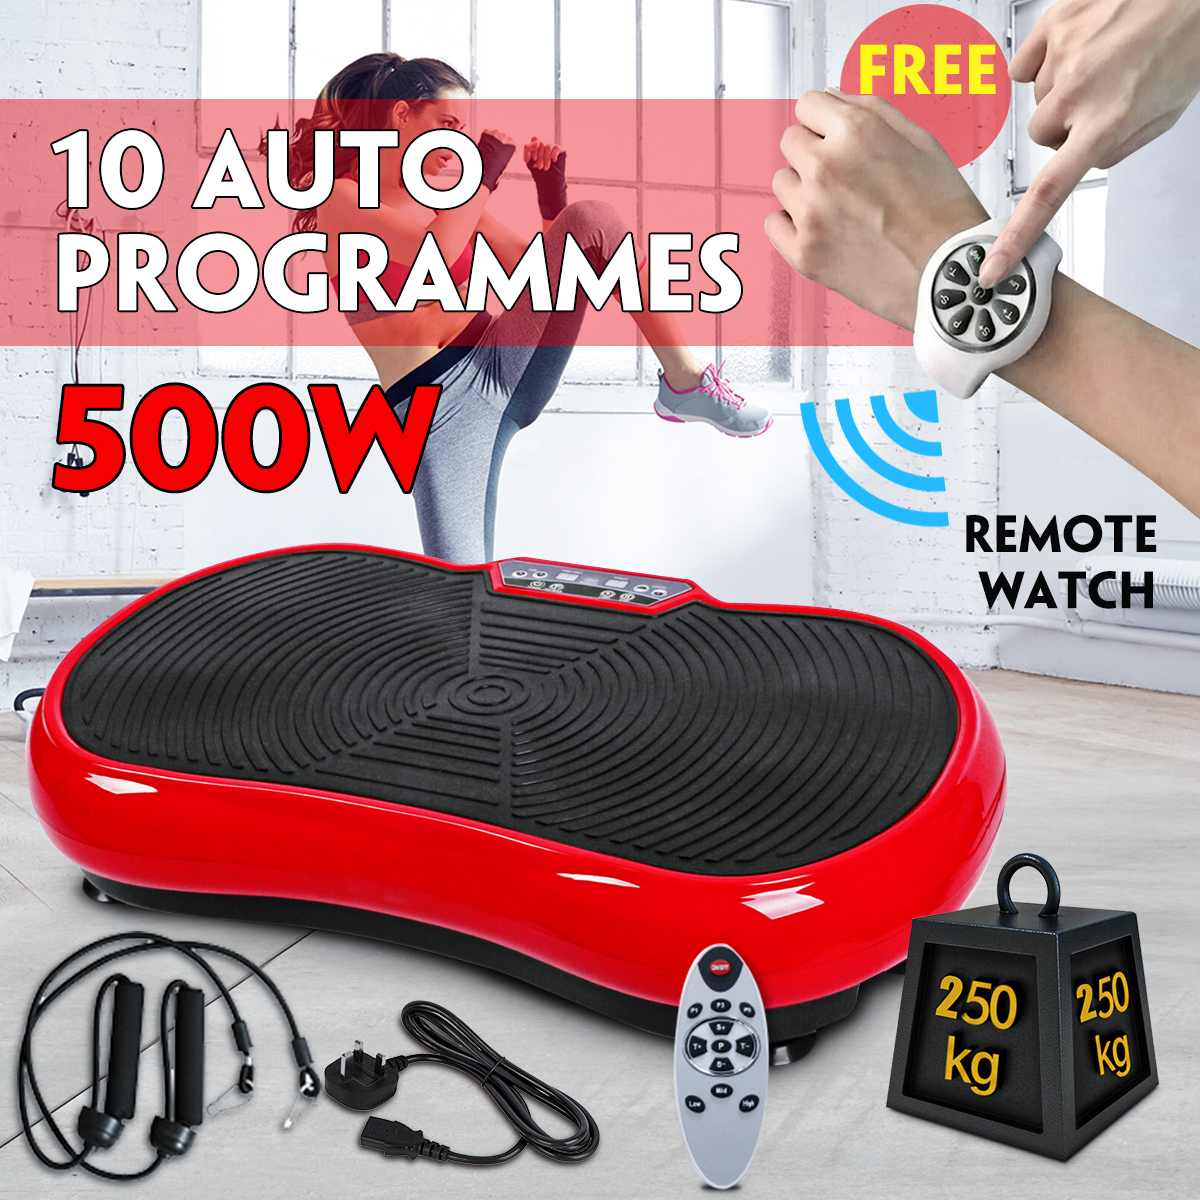 250KG Max Bearing Exercise Fitness Slim Vibration Machine Trainer Plate Platform Body Shaper +Remote Watch+ RC+Resistance Band